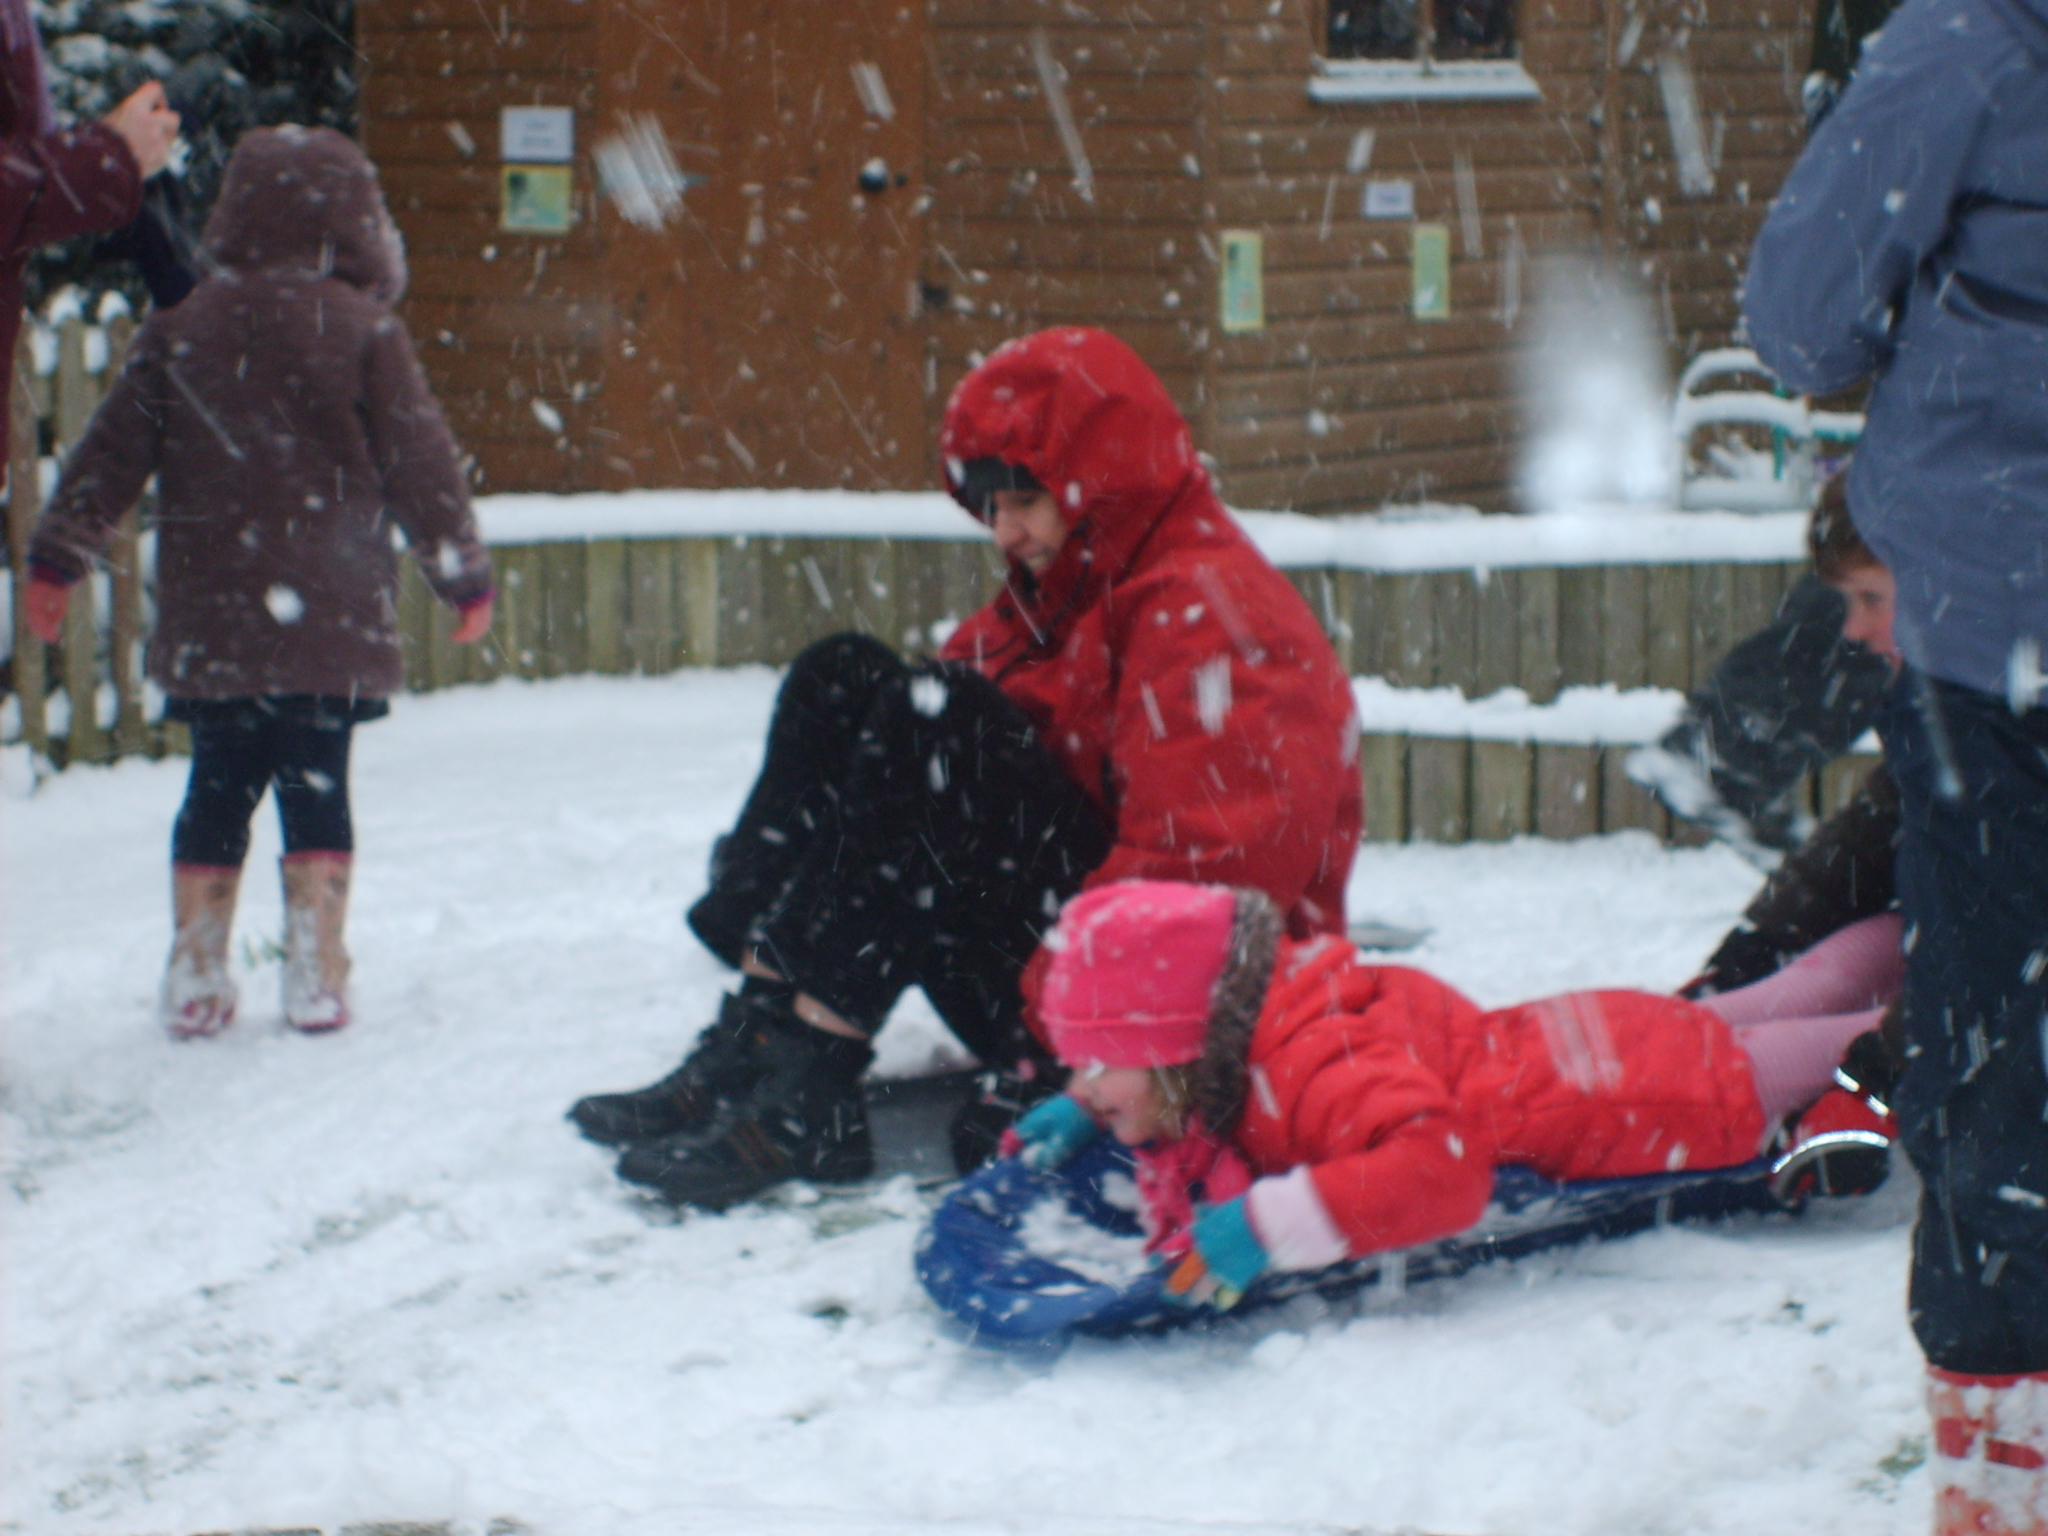 Sledgeing in the snow